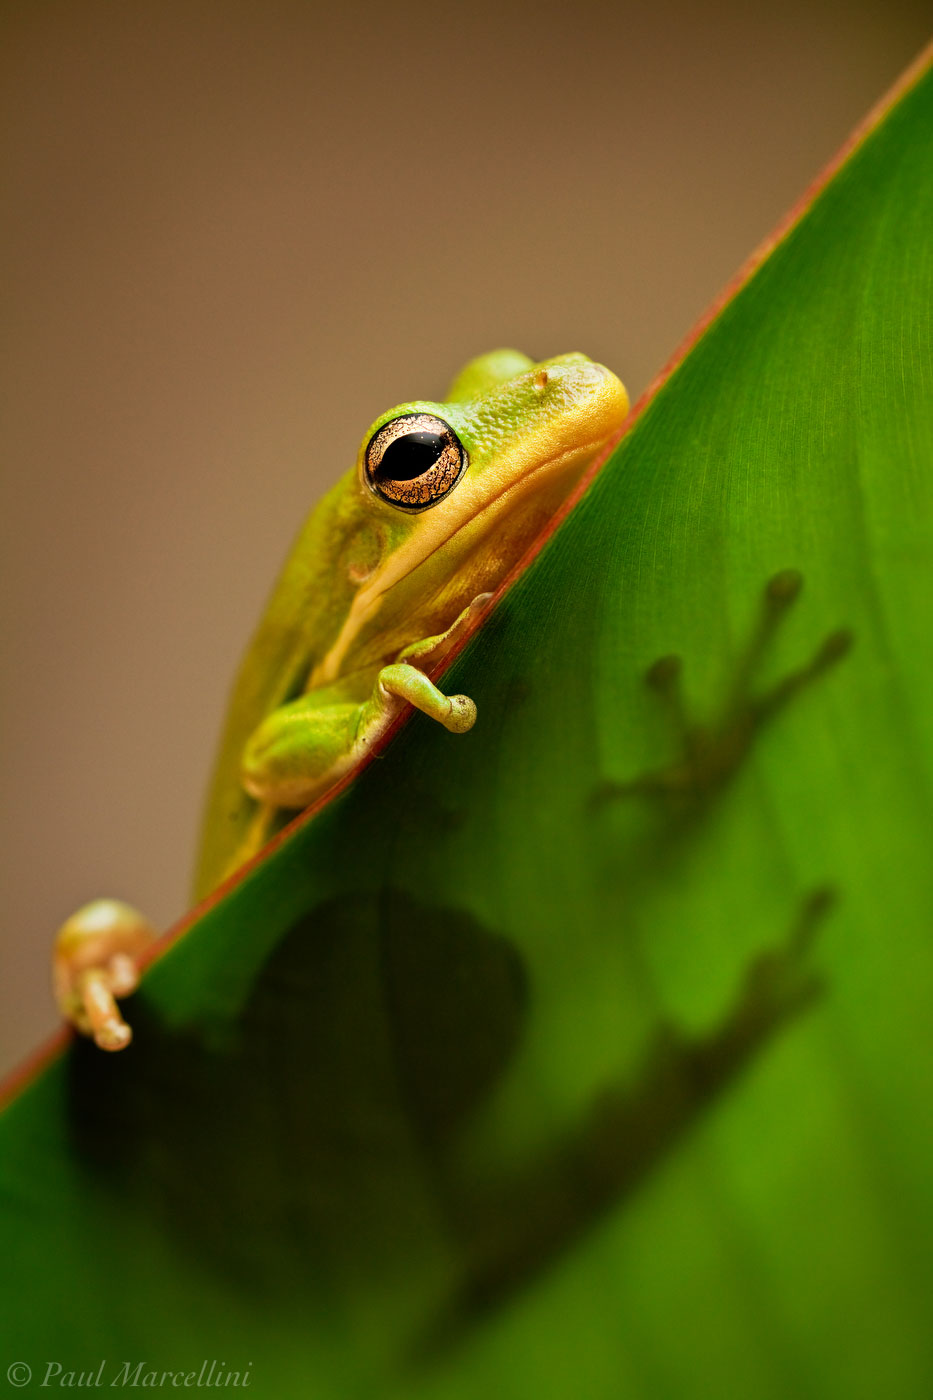 Hyla cinerea, green tree frog, frog, miami, florida, photo